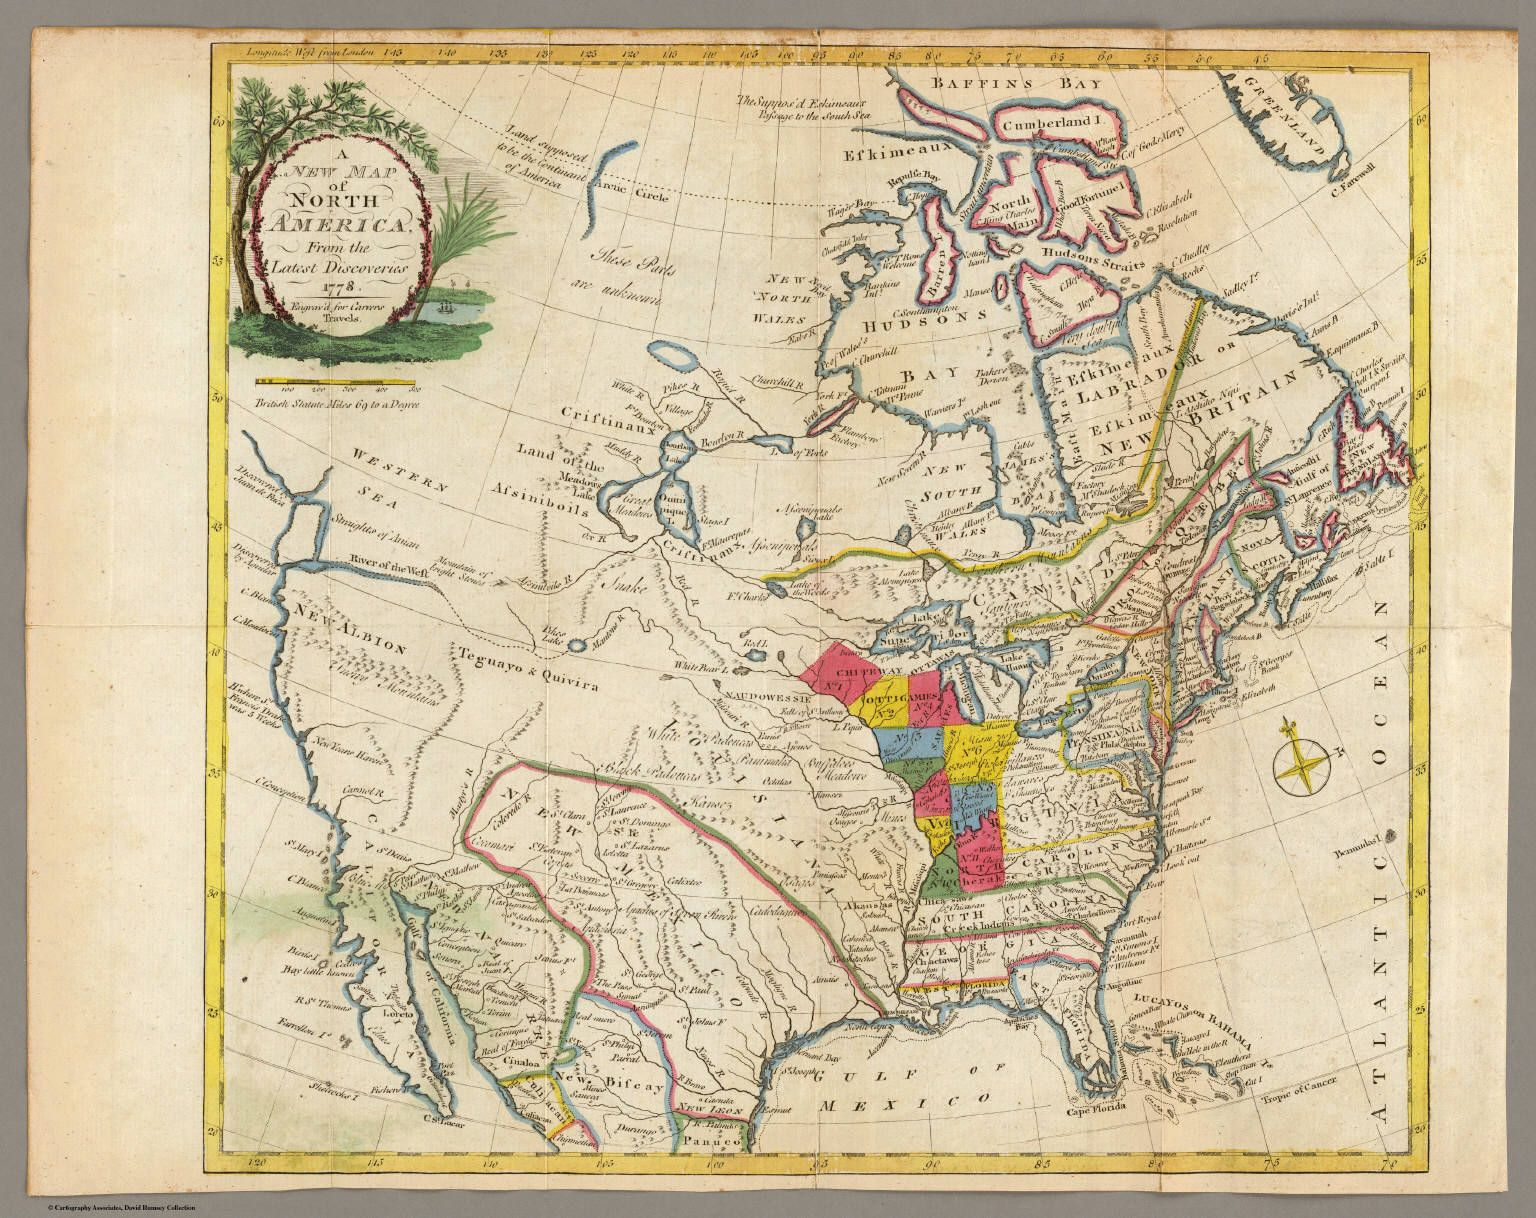 1778 version of map of north america maps pinterest genealogy 1778 version of map of north america gumiabroncs Images